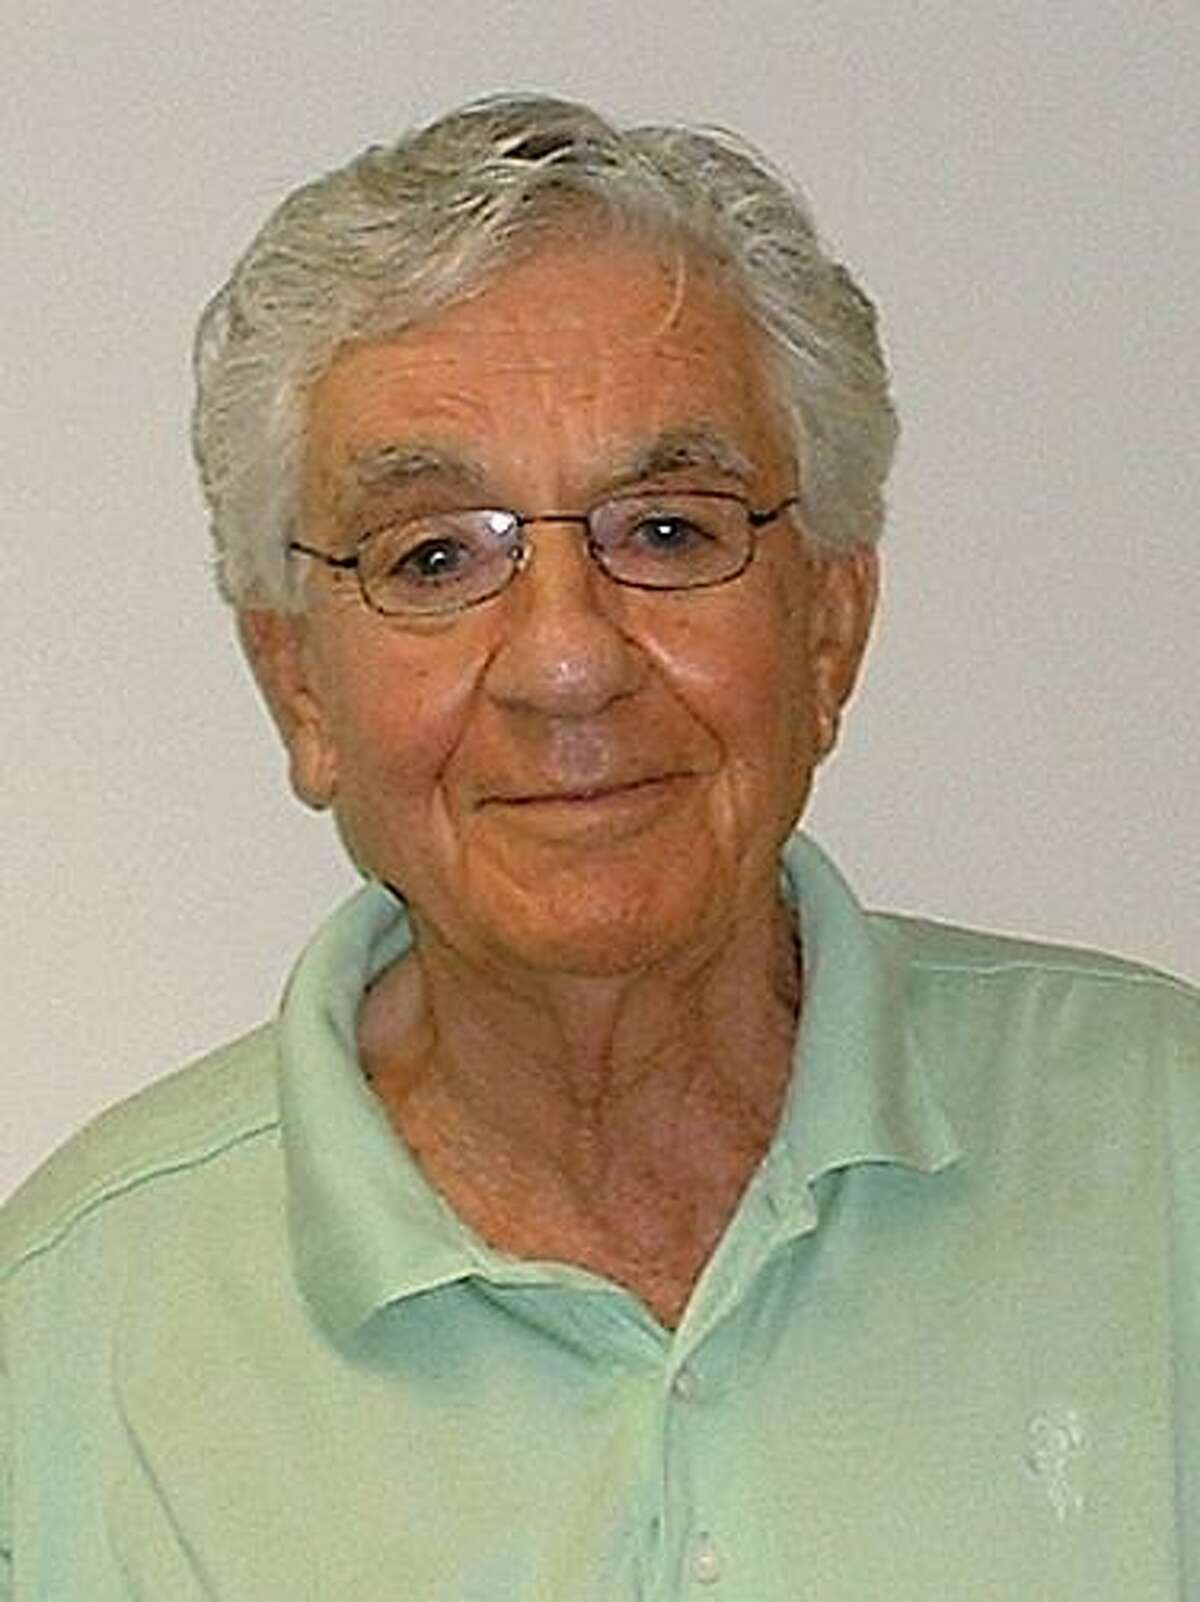 Edwin Sperber, a longtime Capital Region businessman and philanthropist, died at age 98 July 5, 2020.